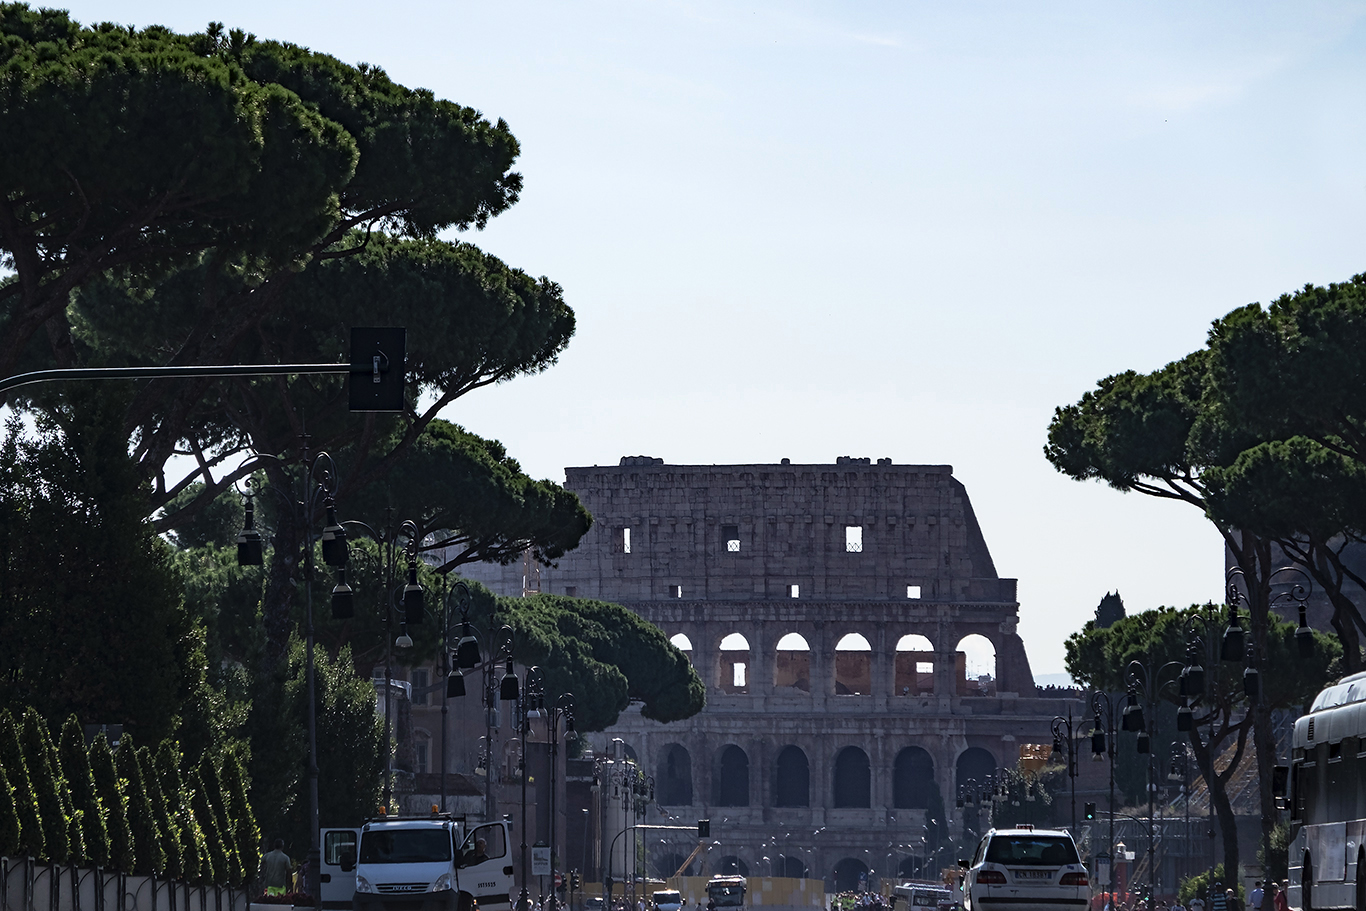 Colosseum Rome Photo by Michael David